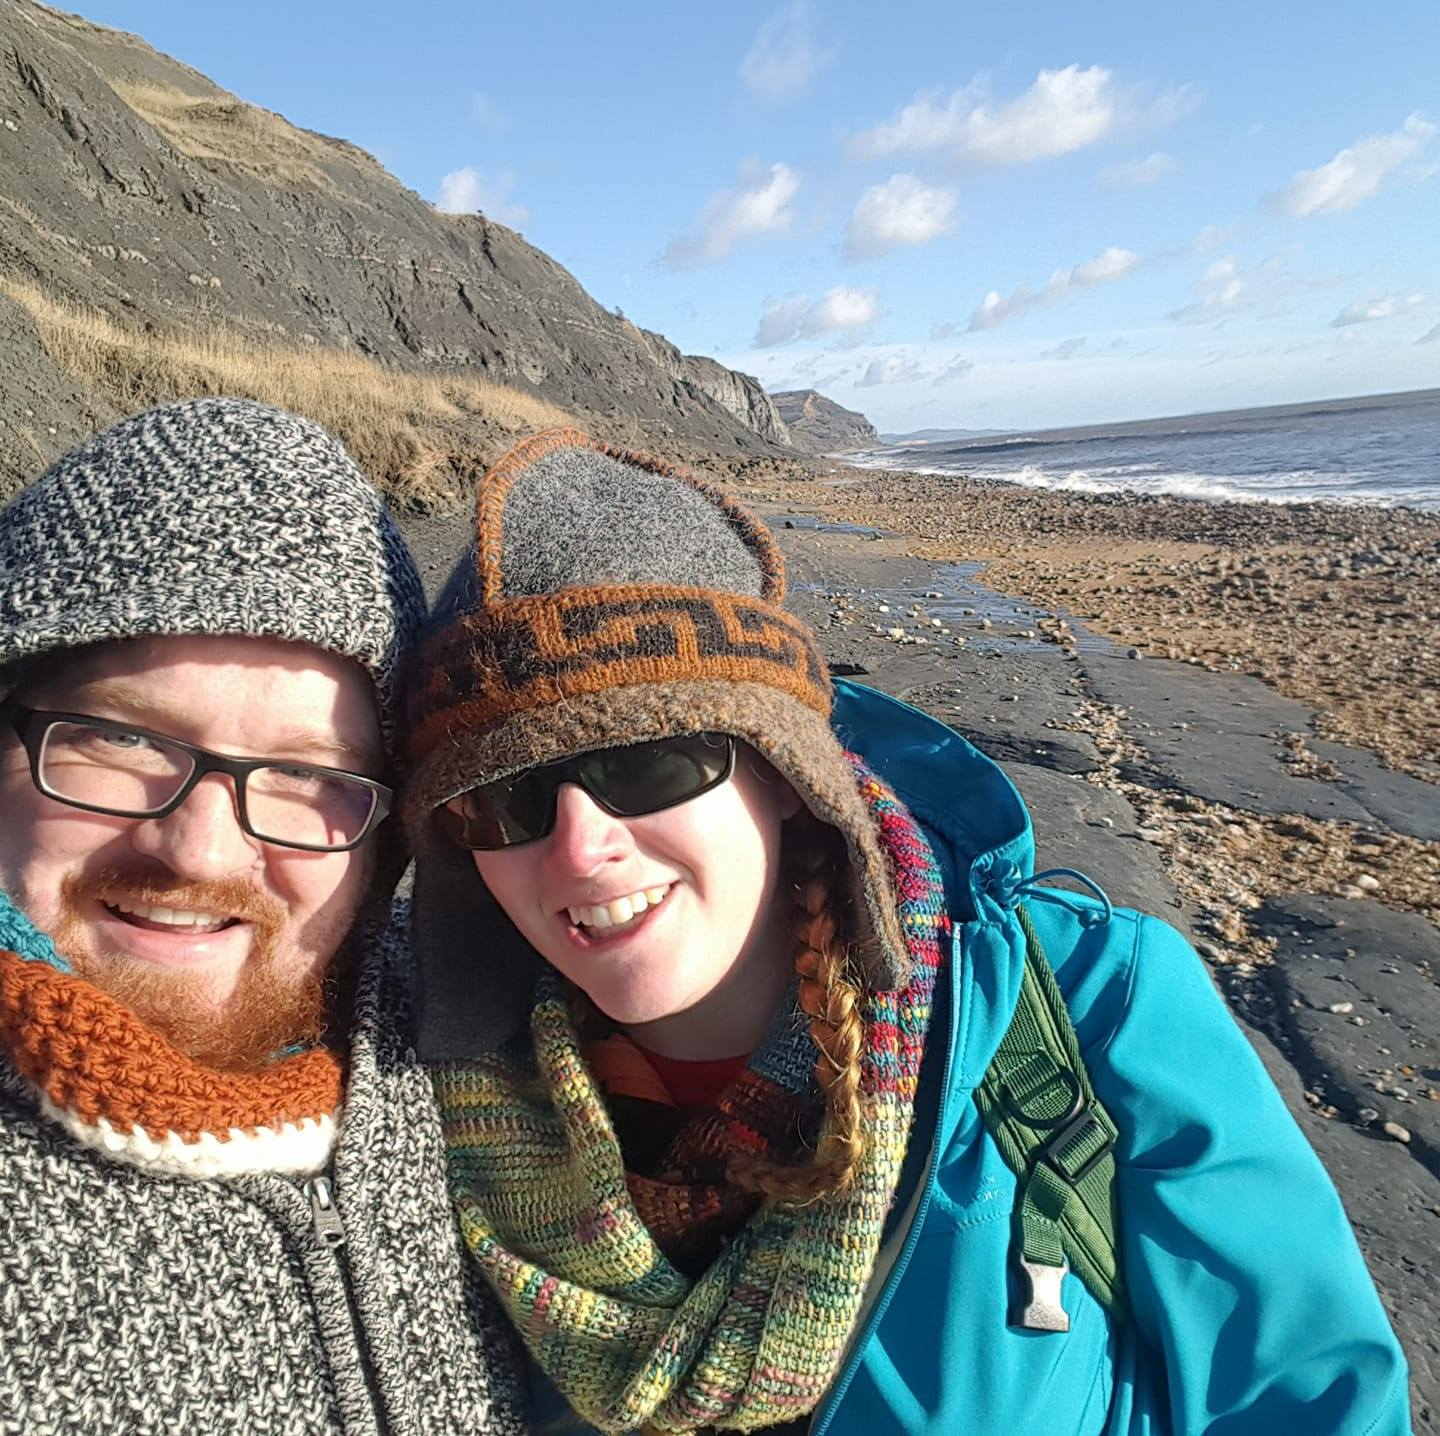 Me and Tom on Charmouth beach